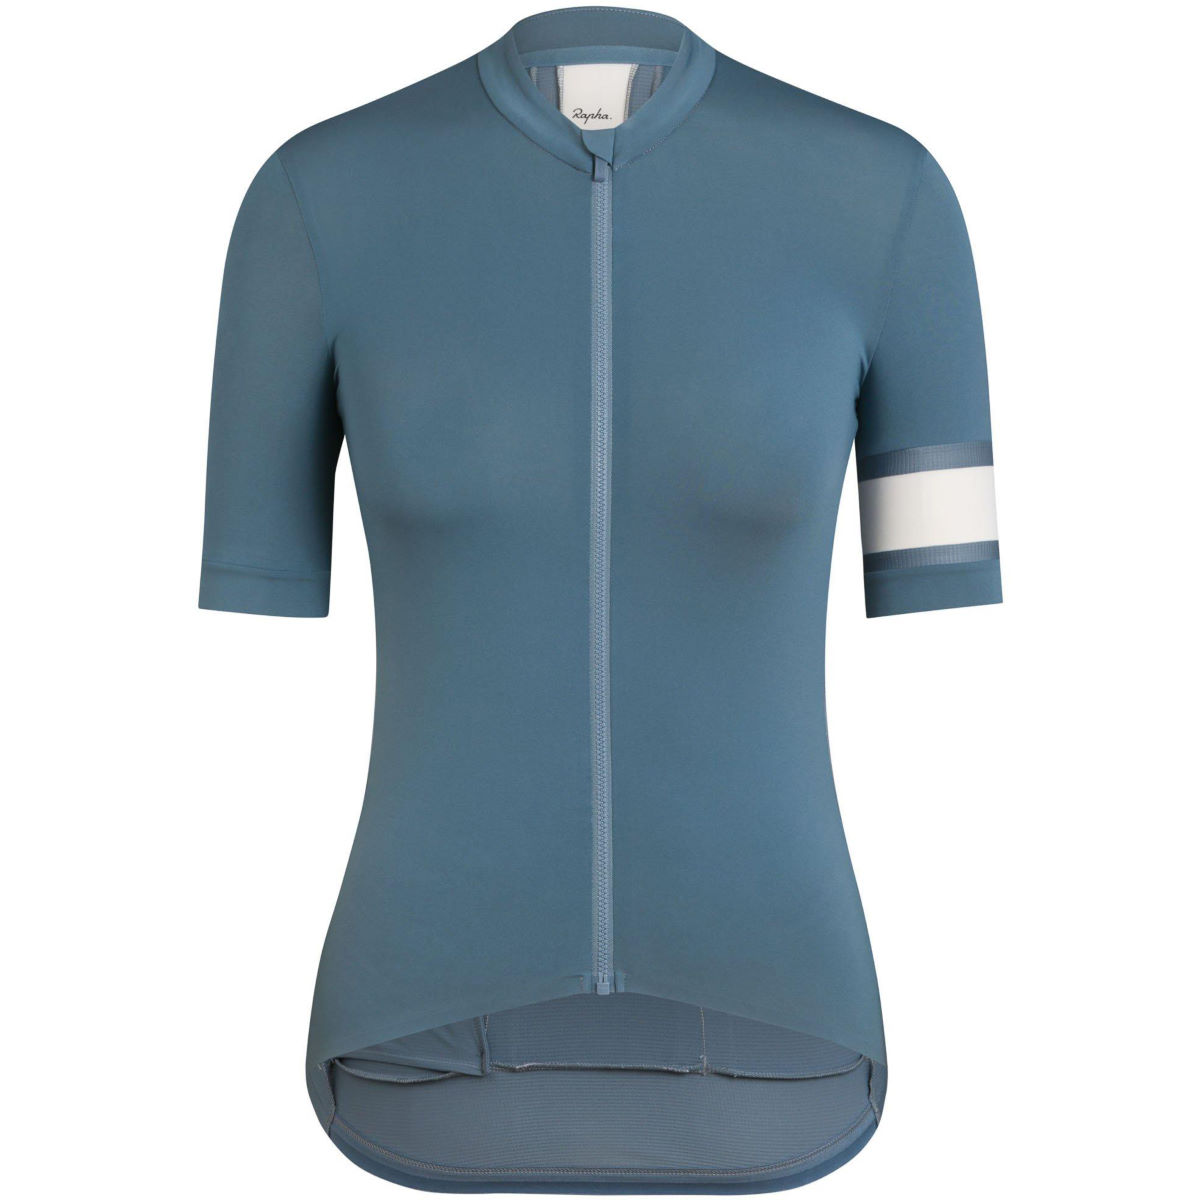 Maillot Rapha Souplesse II para mujer - Maillots